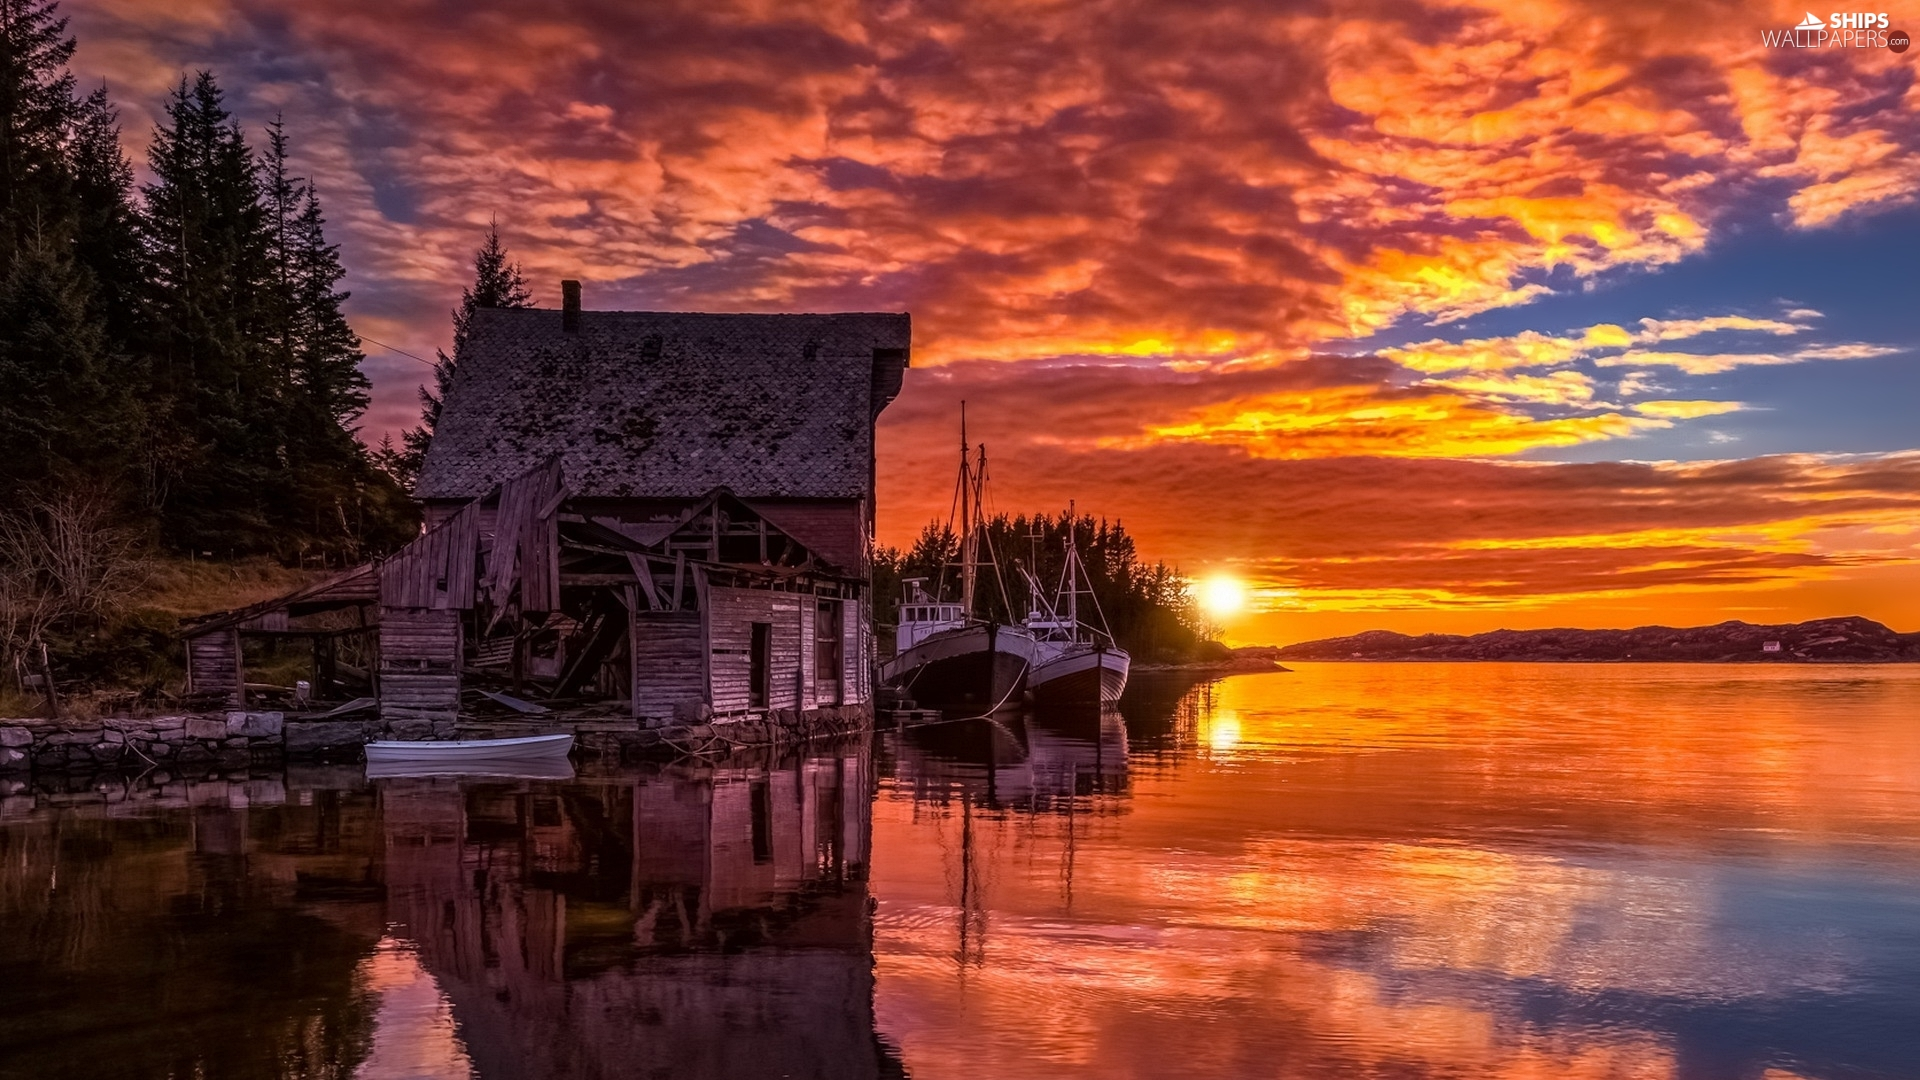 Cutters, Toftøya Island, Great Sunsets, North Sea, Norway, Boats, house